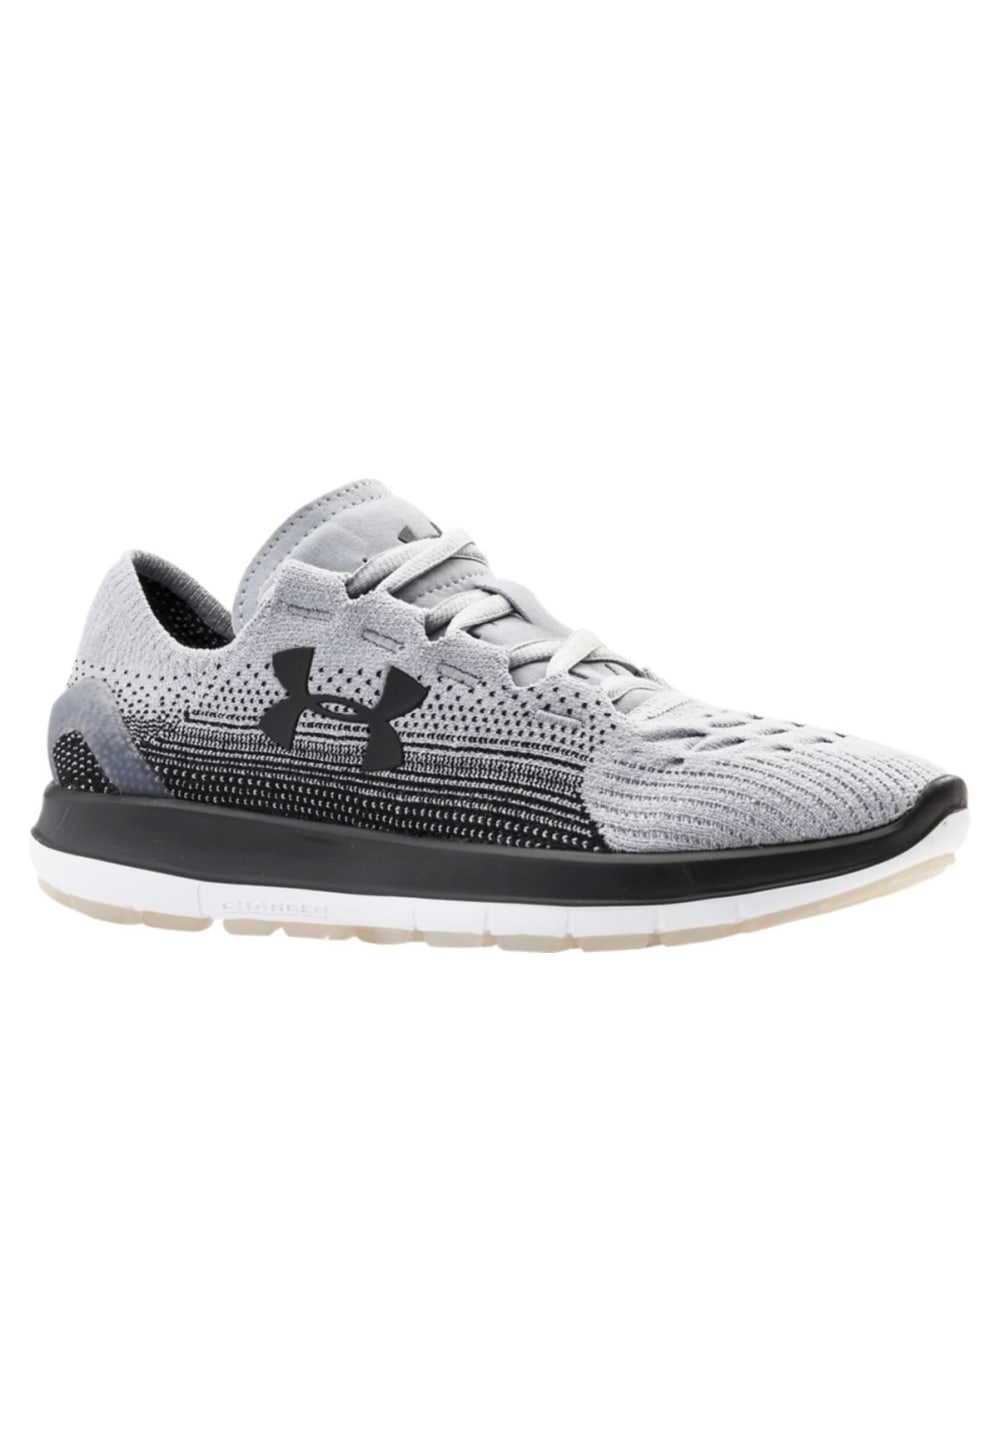 c64cf161c7e Under Armour Speedform Slingride Fade - Chaussures running pour ...